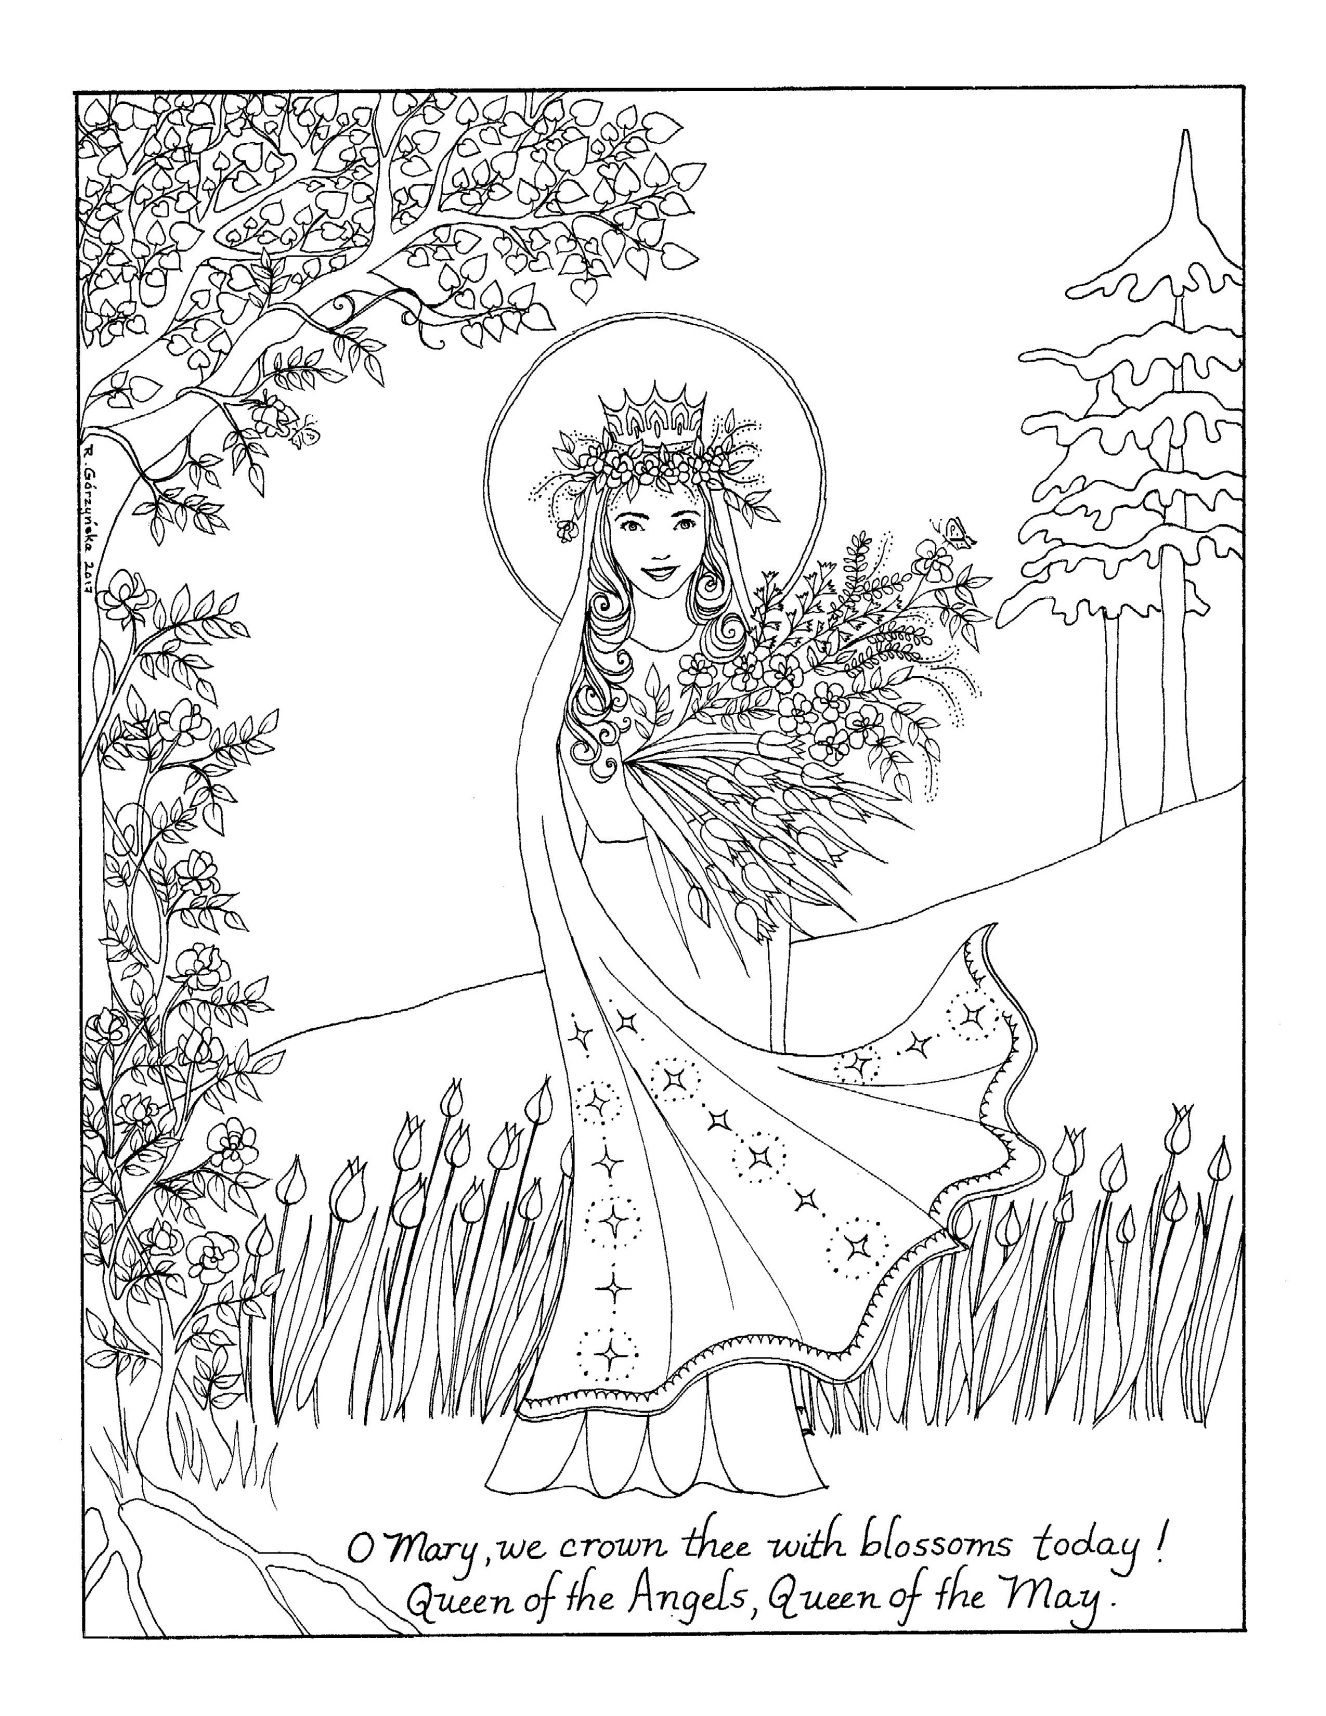 May Queen — Catholic Coloring Page | Coloring pages ...